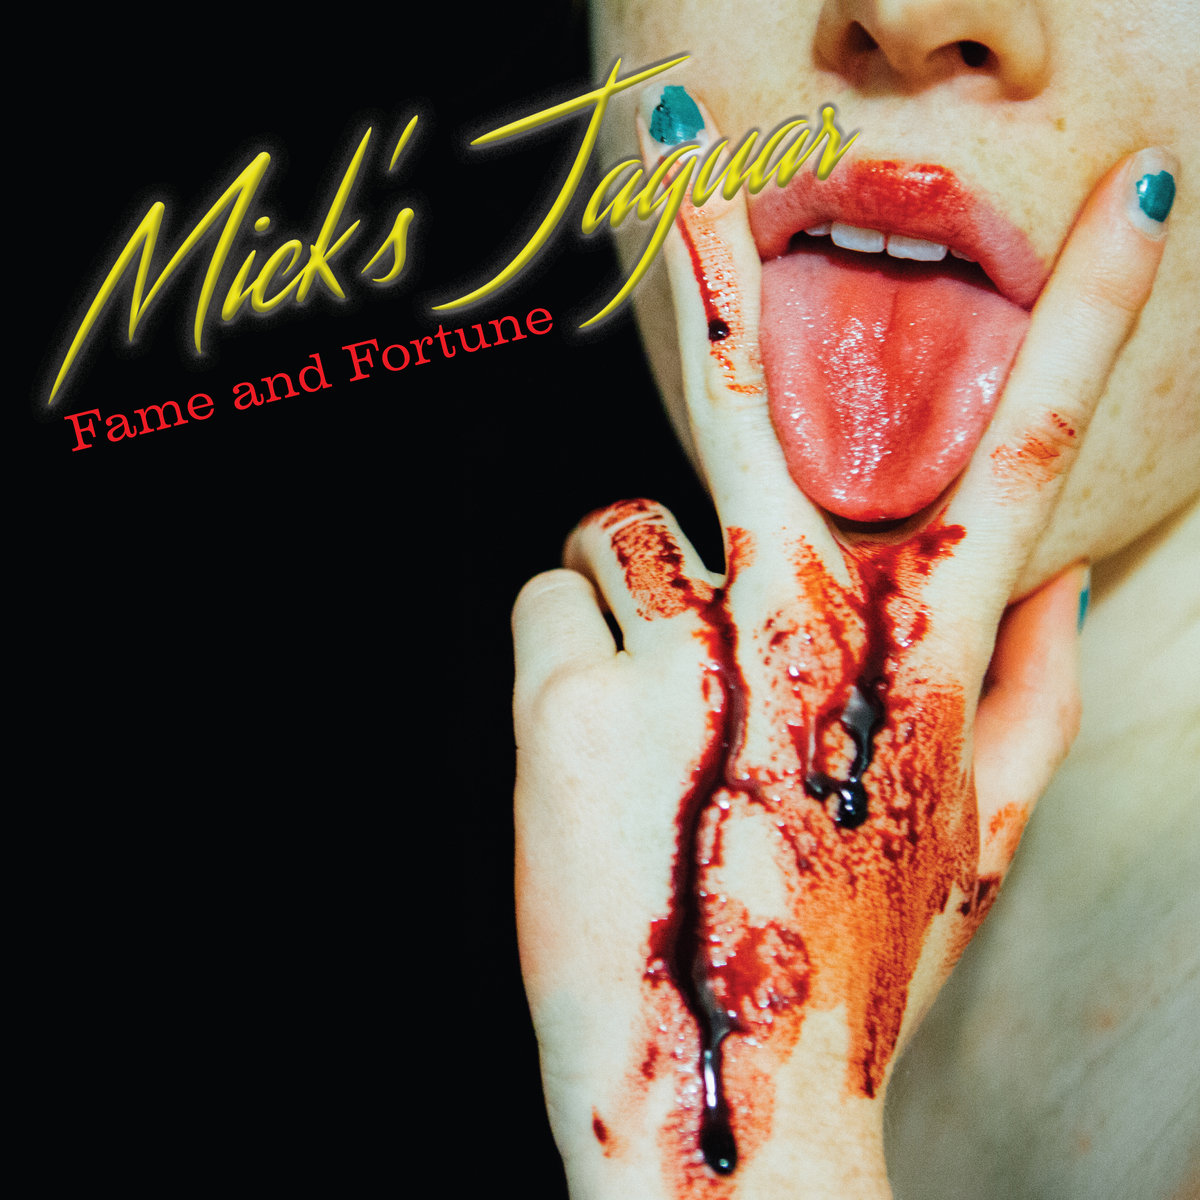 Album Review: Fame and Fortune by Mick's Jaguar - Ladies, rejoice! Mick's Jaguar are here to save rock n roll!